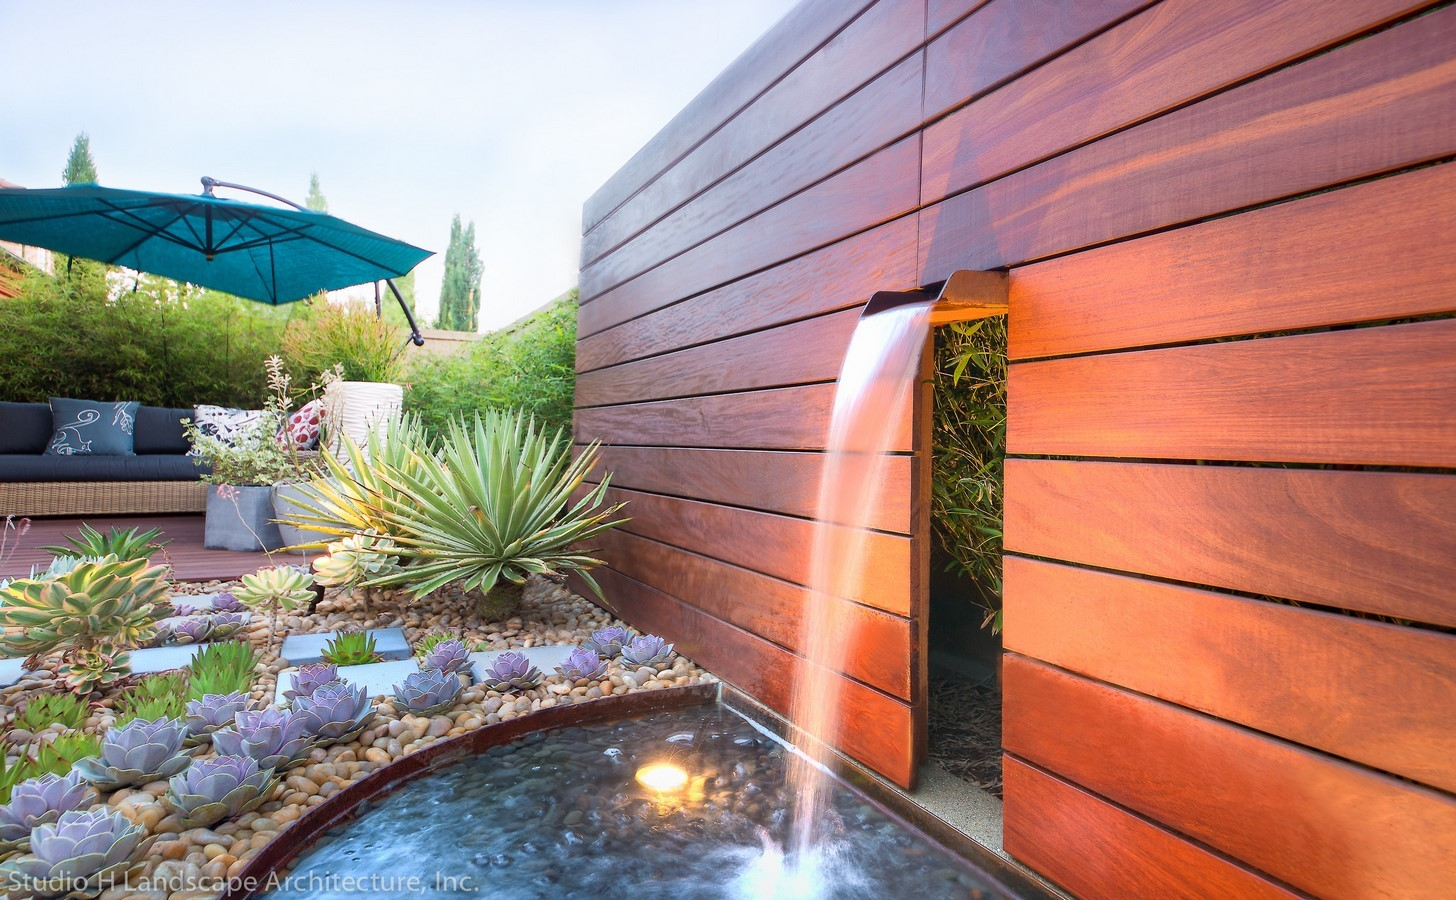 50 Ideas and Tips for Landscaping - Sheet38